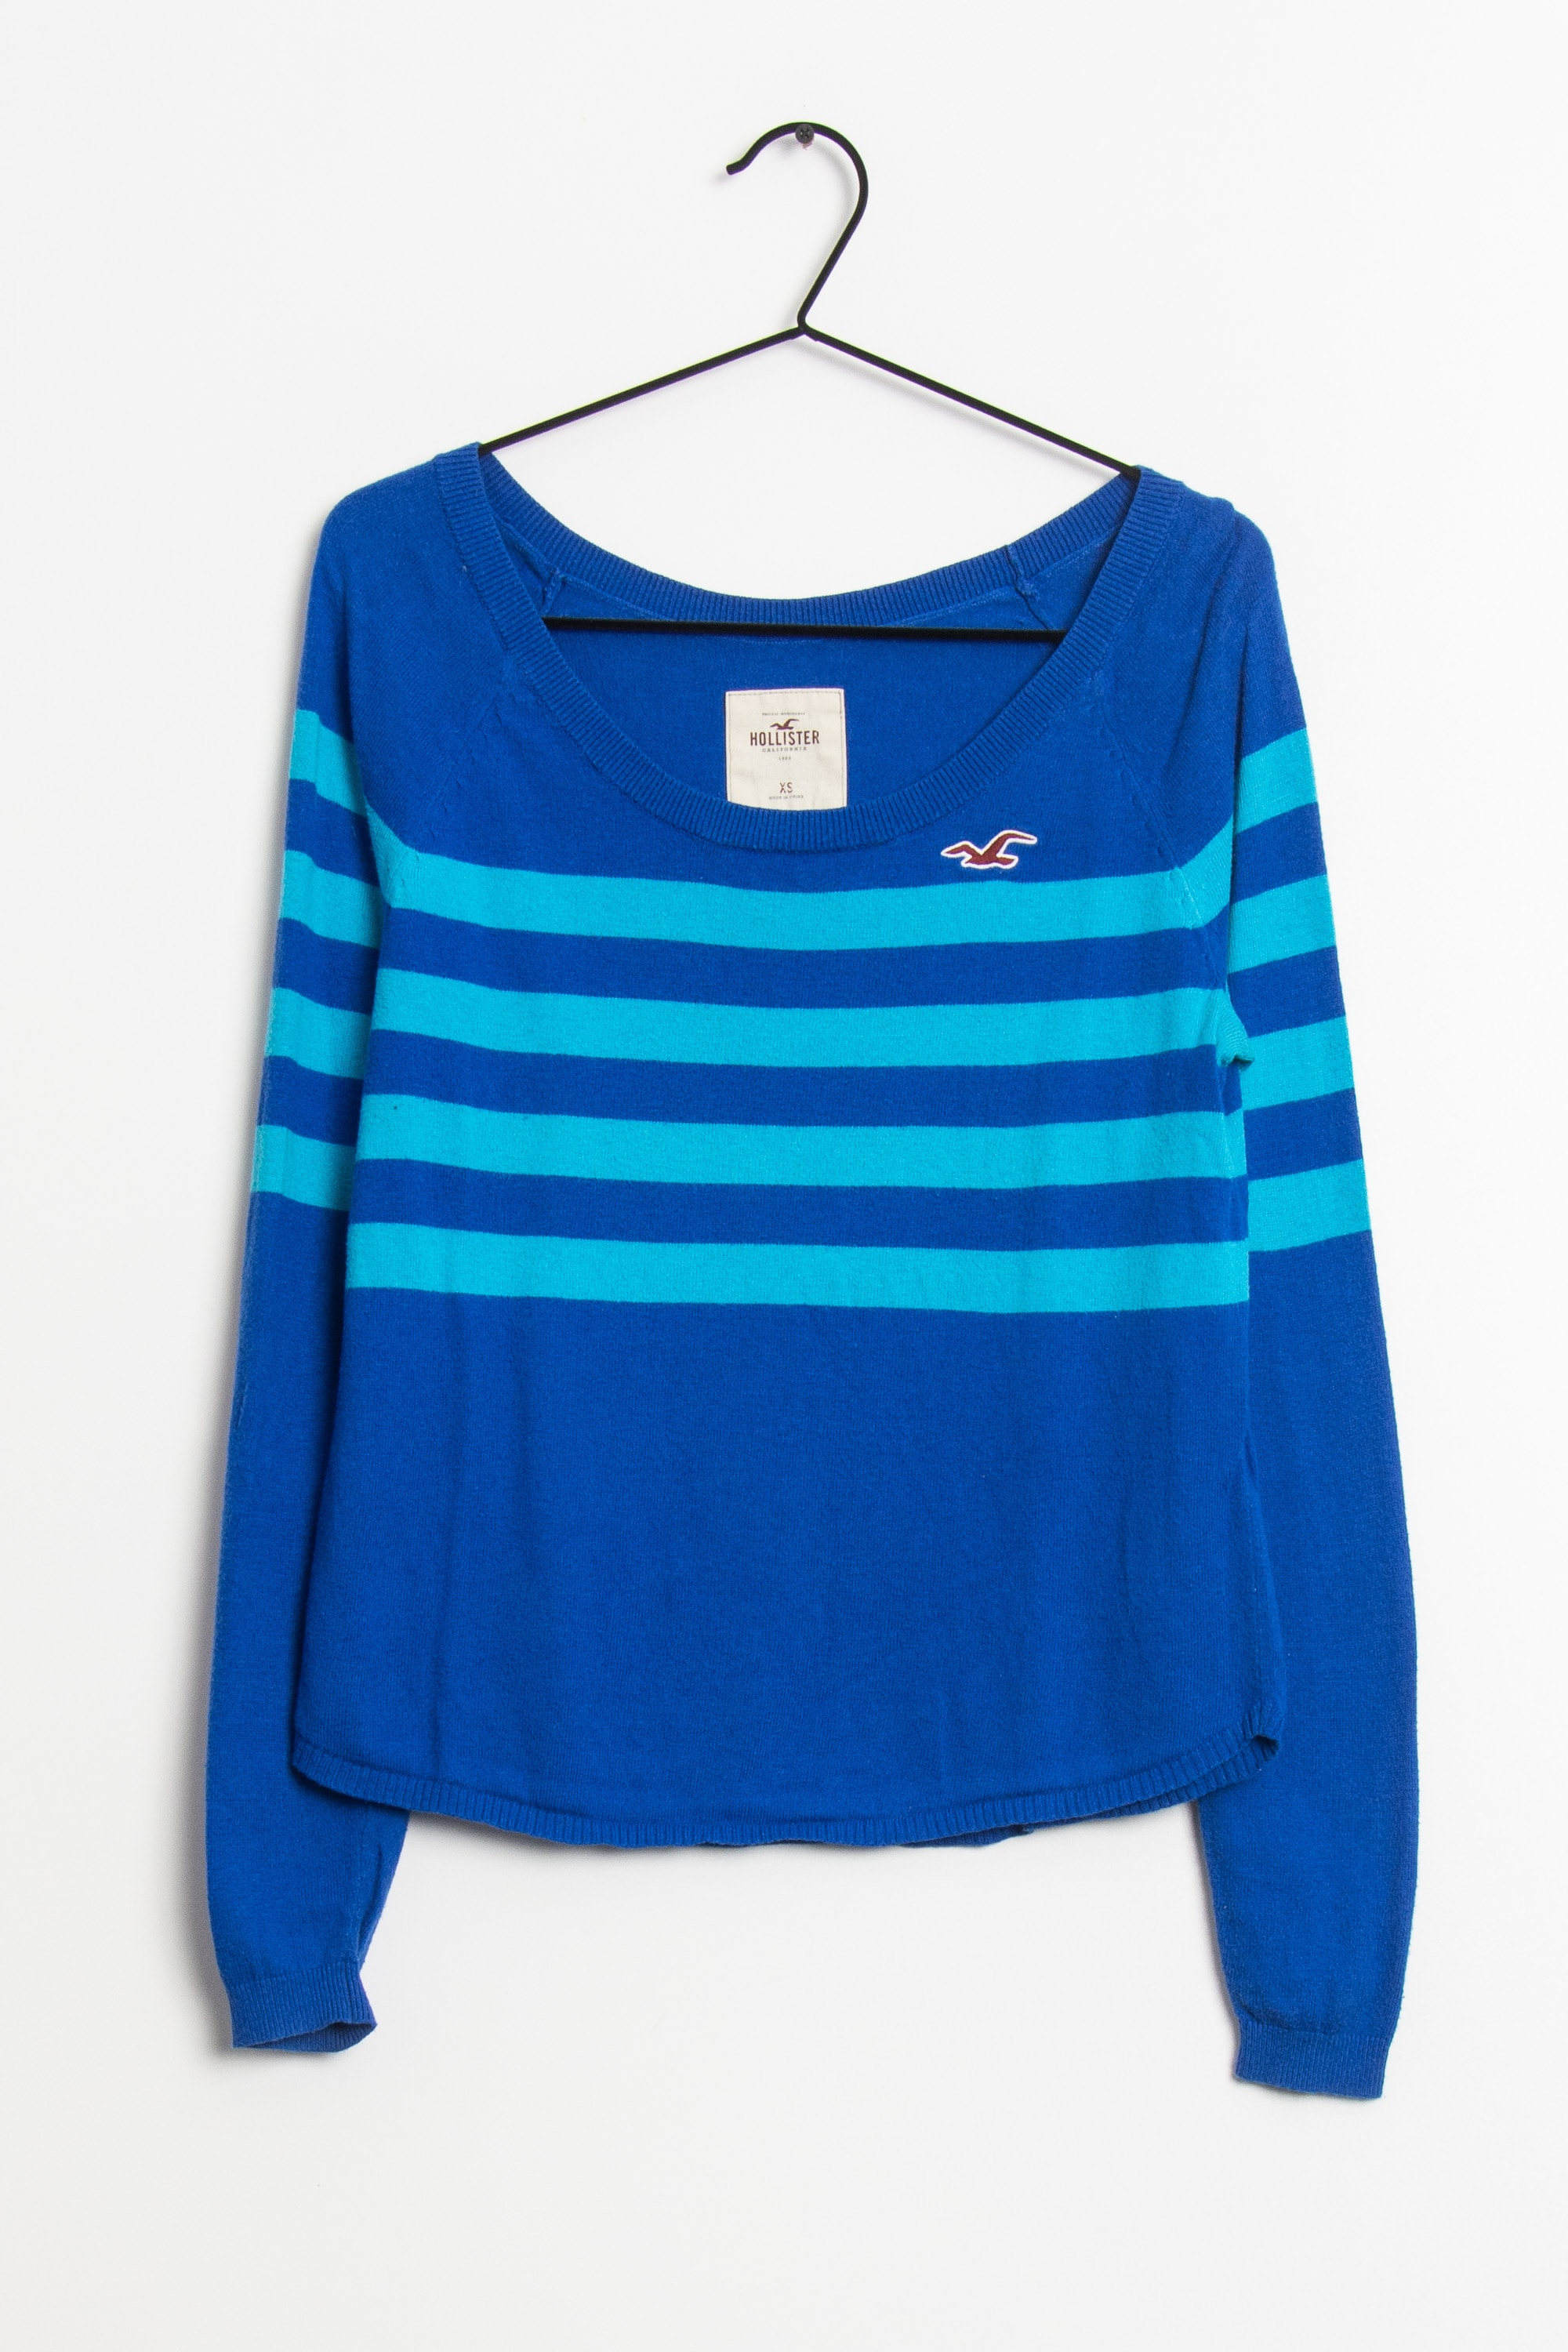 Hollister Co. Strickpullover Blau Gr.XS